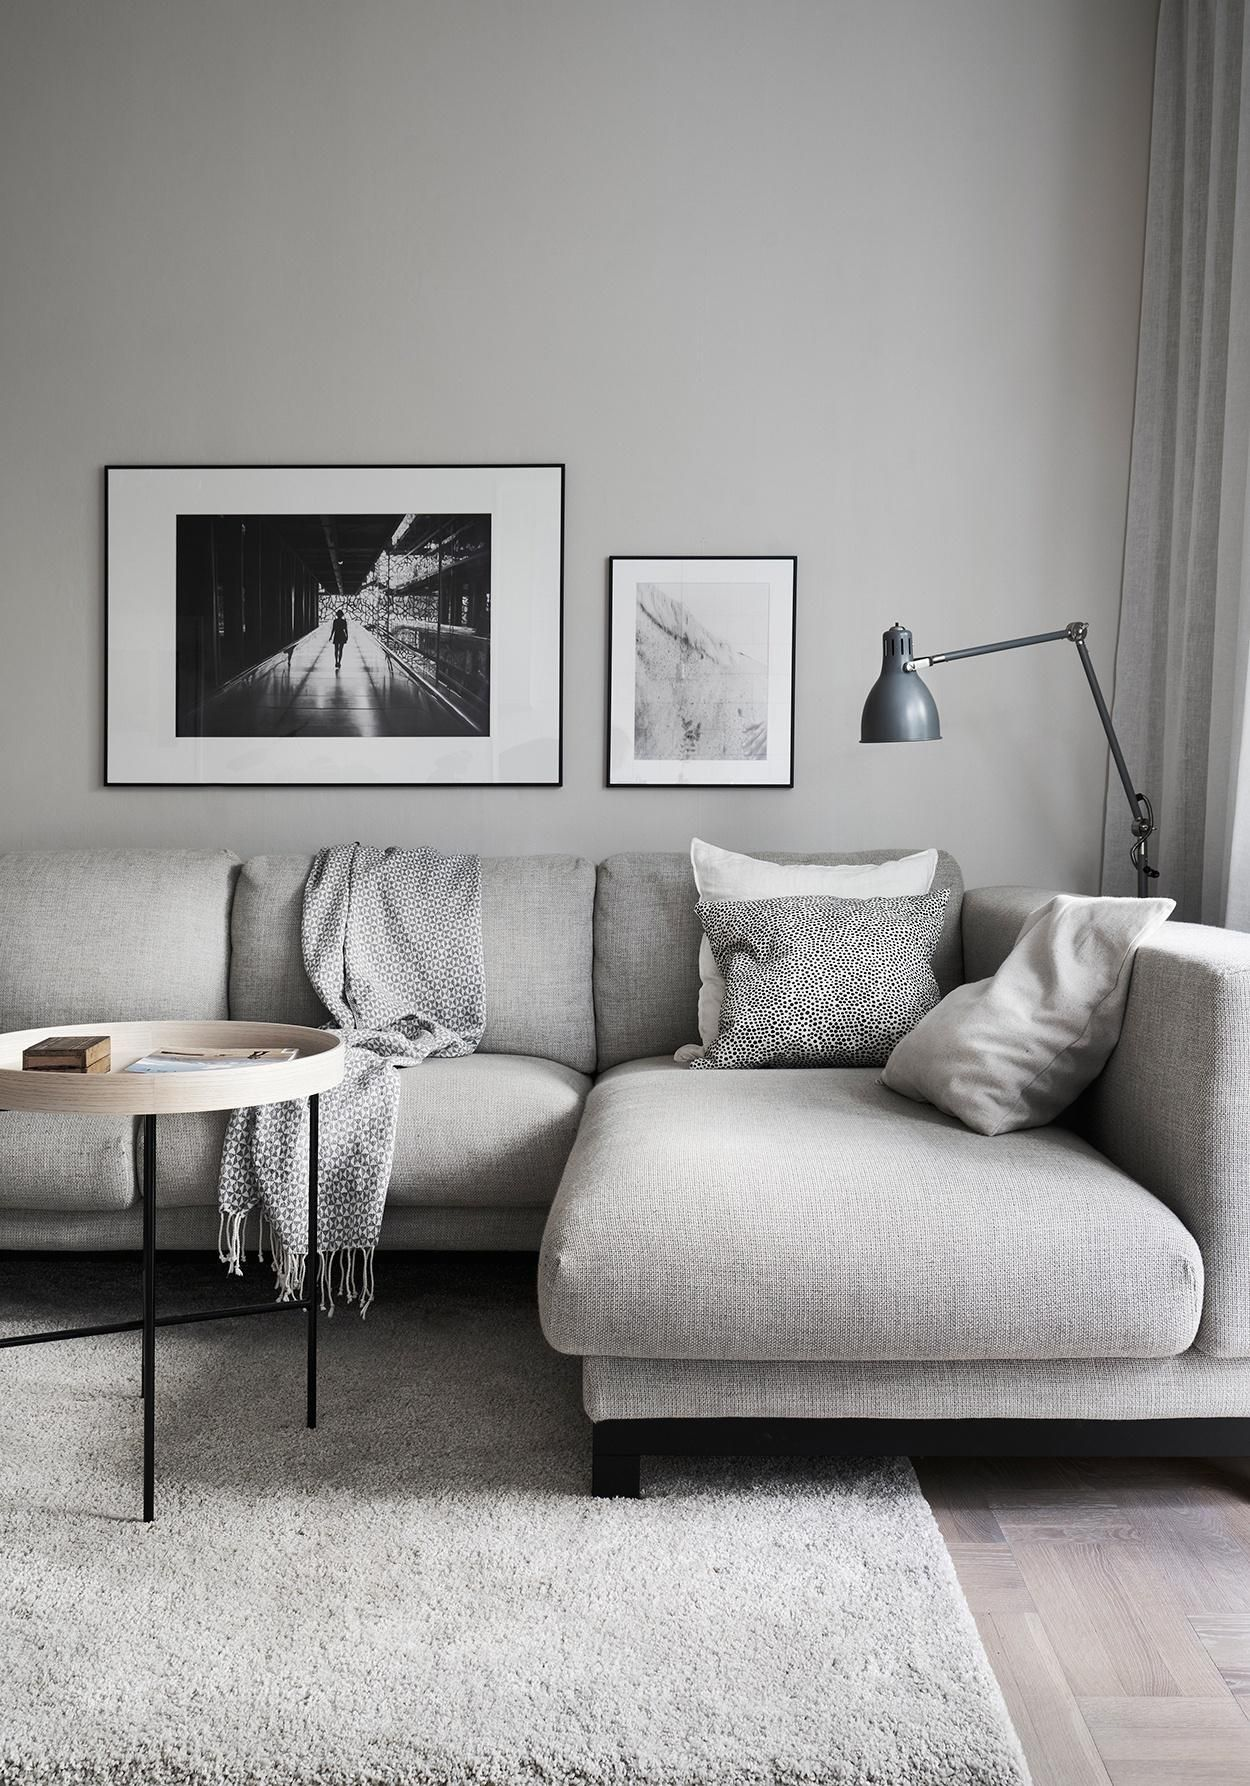 Cold and warm looks combined - via Coco Lapine Design blog ...